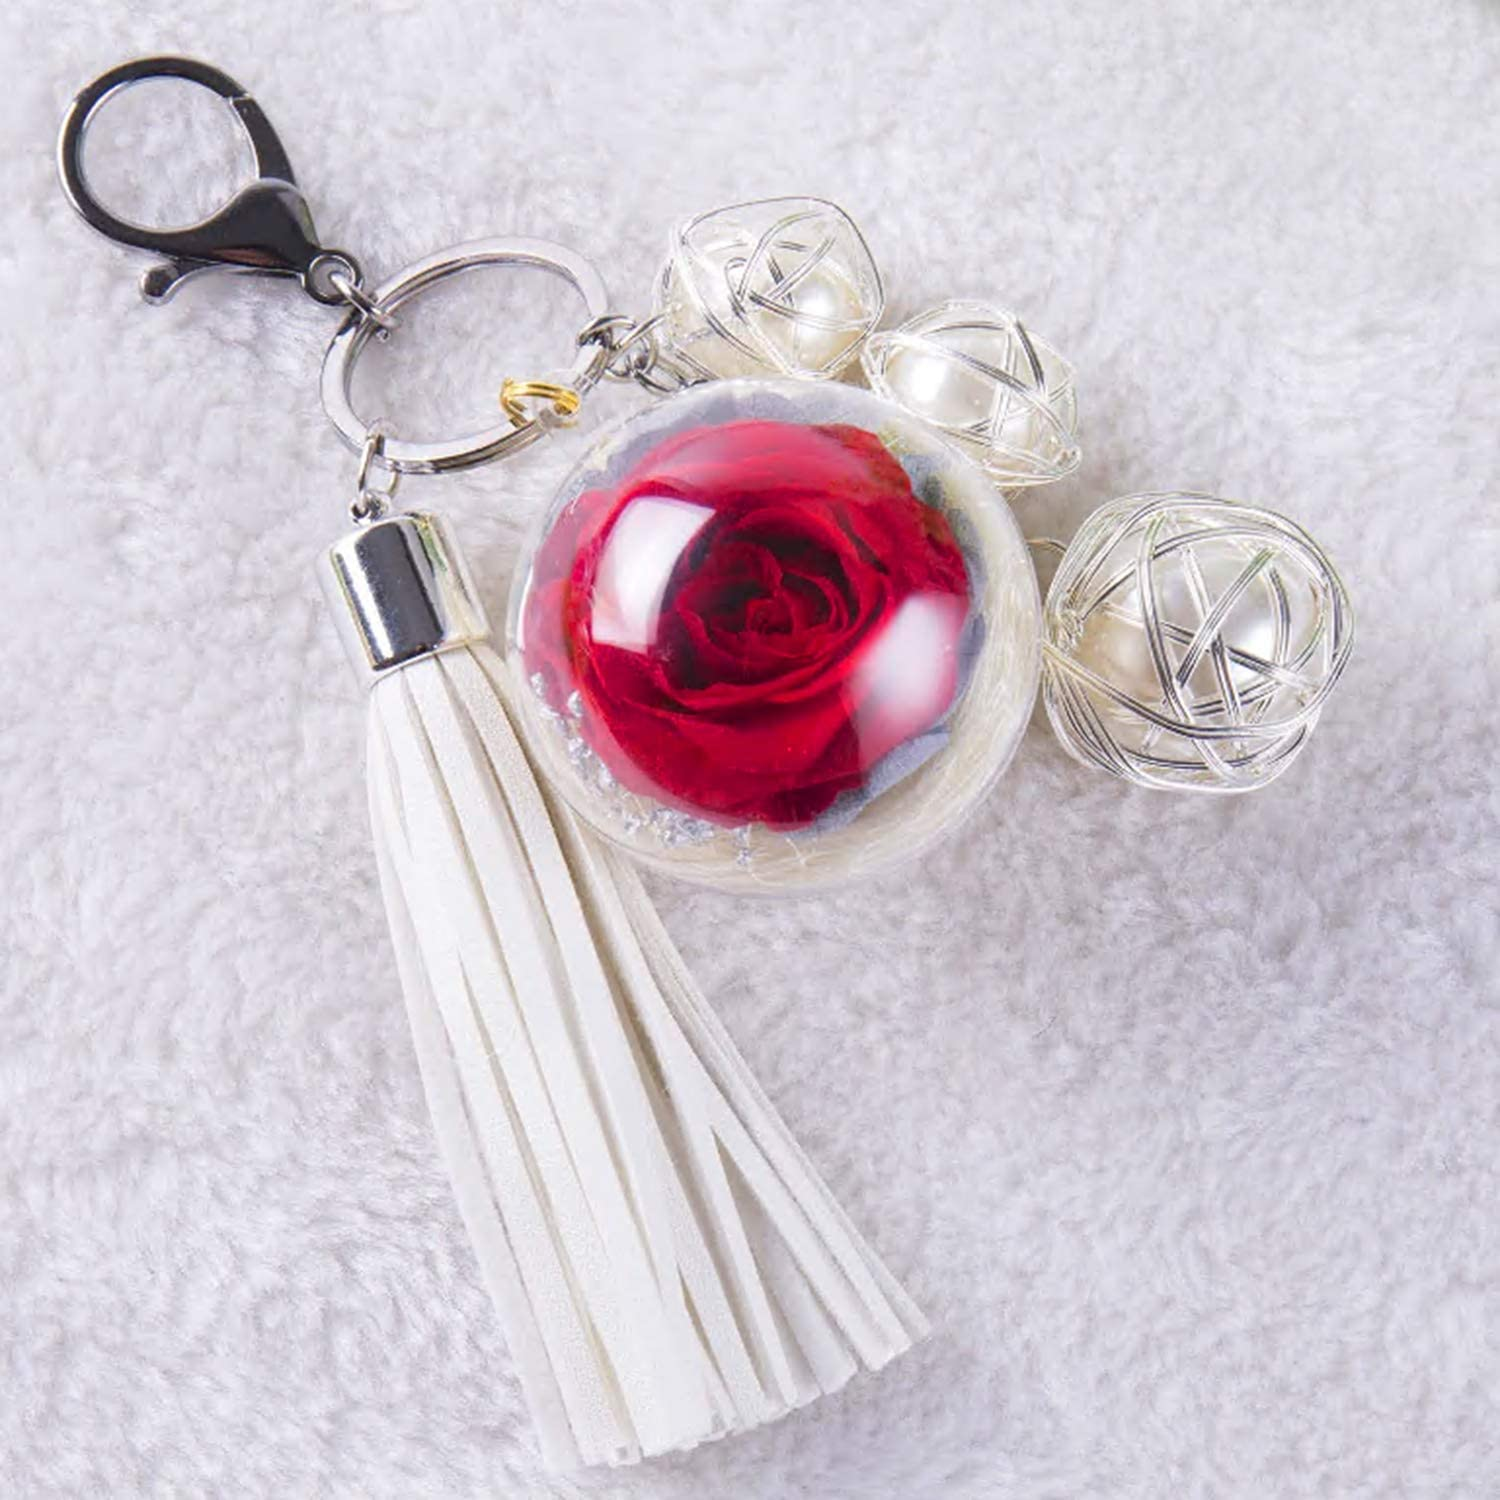 Anniversary ,Christmas Eternal Flowers Perfect Clothing and Bag Accessories Gift with for Valentines Day Birthday NW 1776 Hand-made Flowers Never Fade Plush Ball